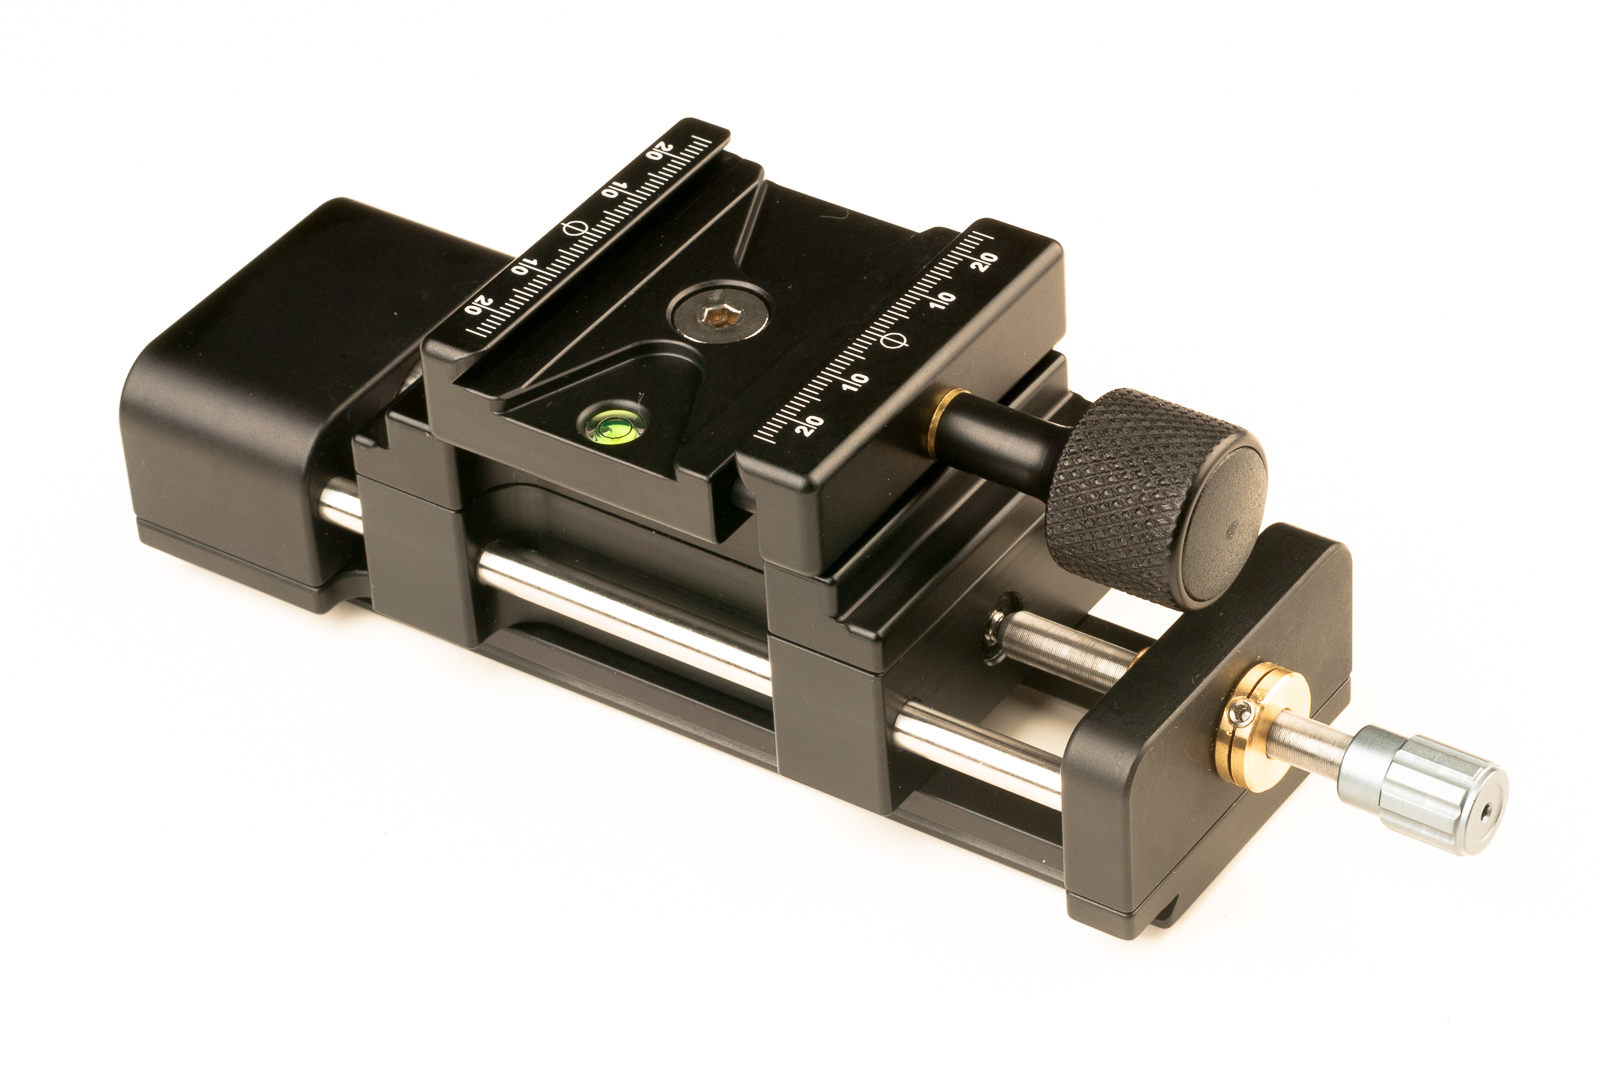 Hejnar PHOTO MS4-100-1 Macro Rail - top view